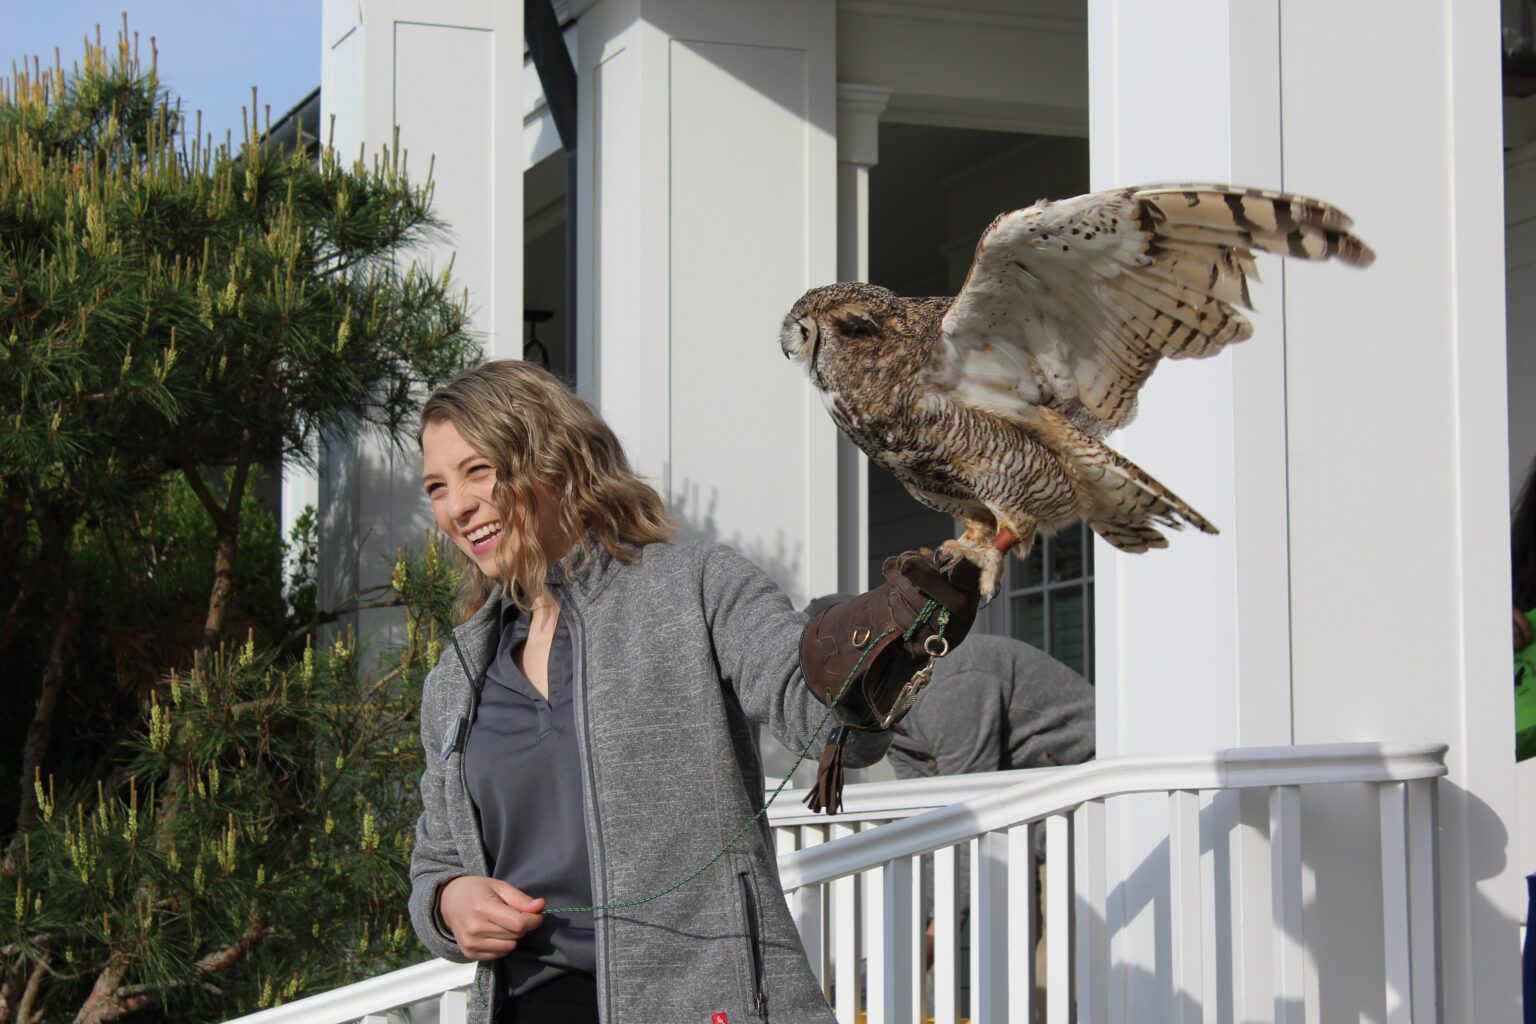 Renee with Owl